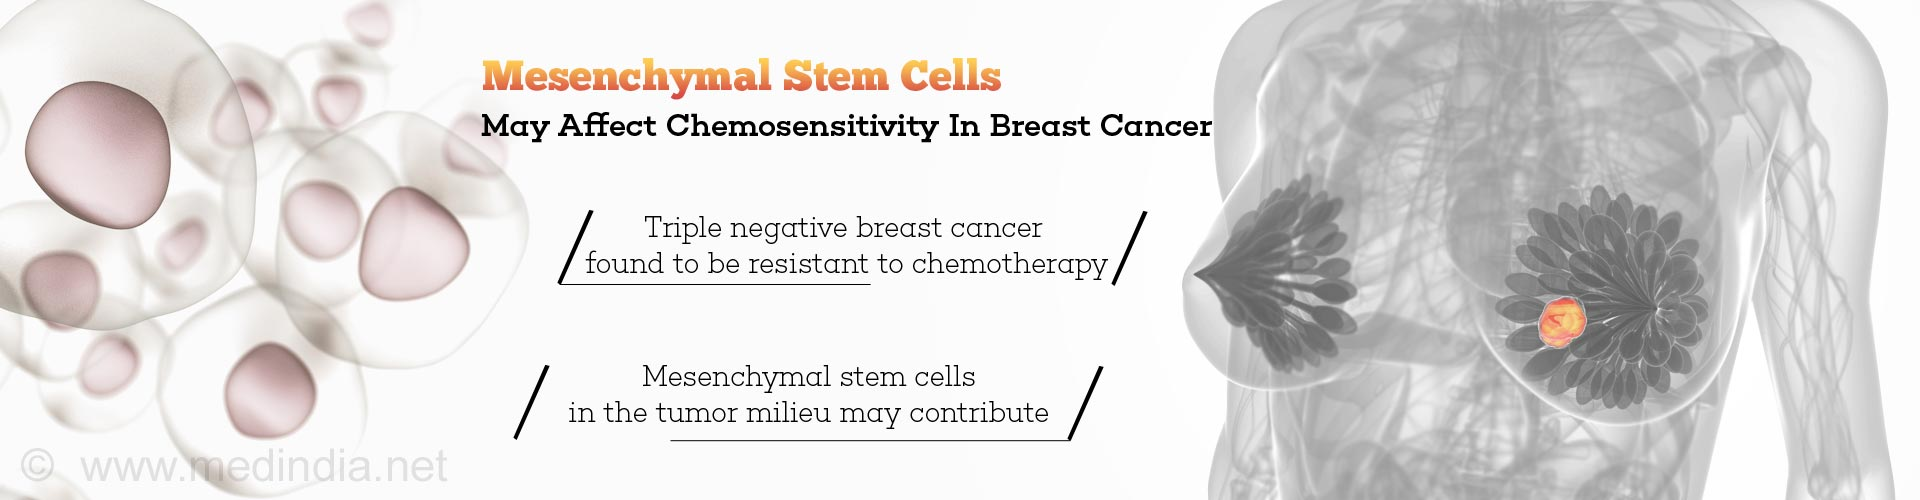 Chemo-resistance in Triple Negative Breast Cancer Linked To Mesenchymal Stem Cells In Tumor